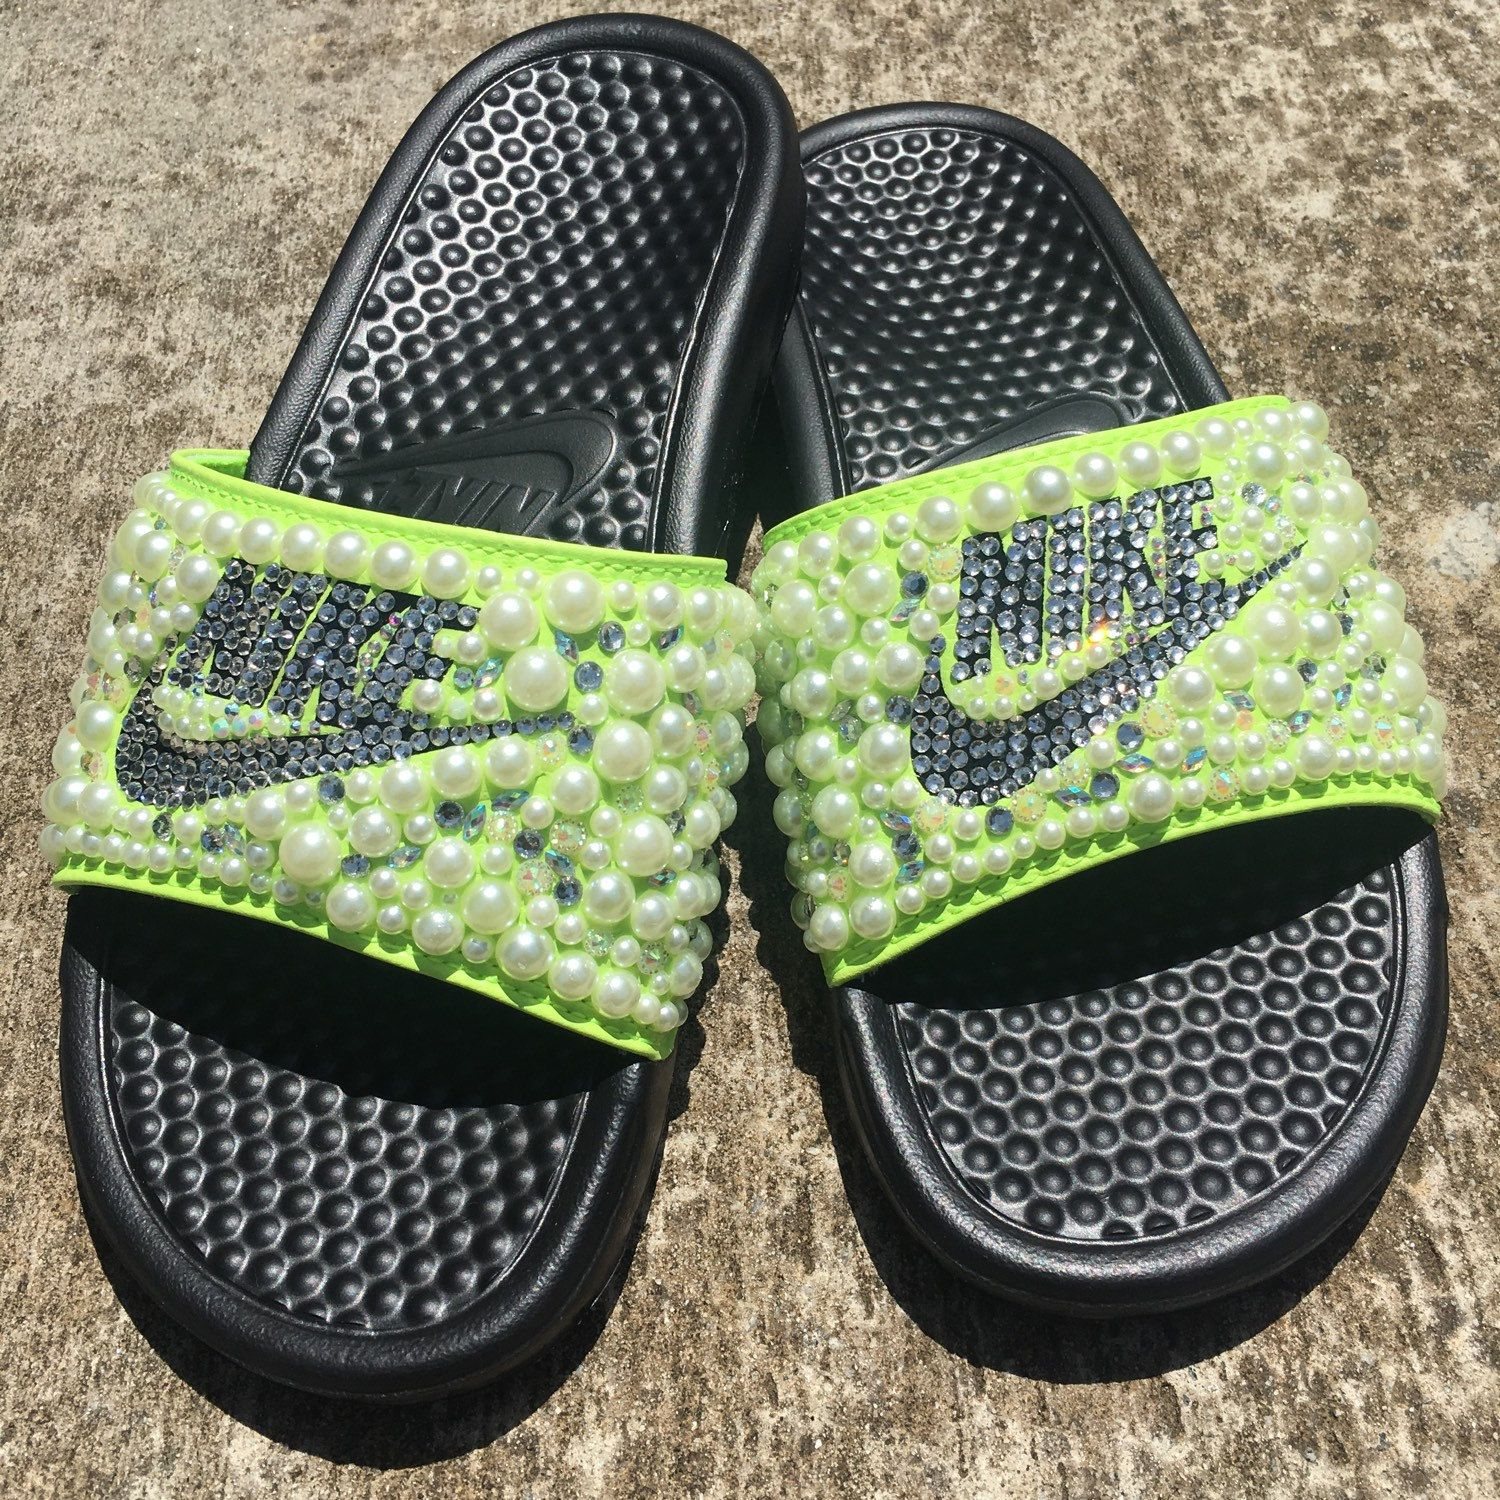 Lime Green Bedazzle Nike Slides. Starting at 45.00 and up. Get your today  for